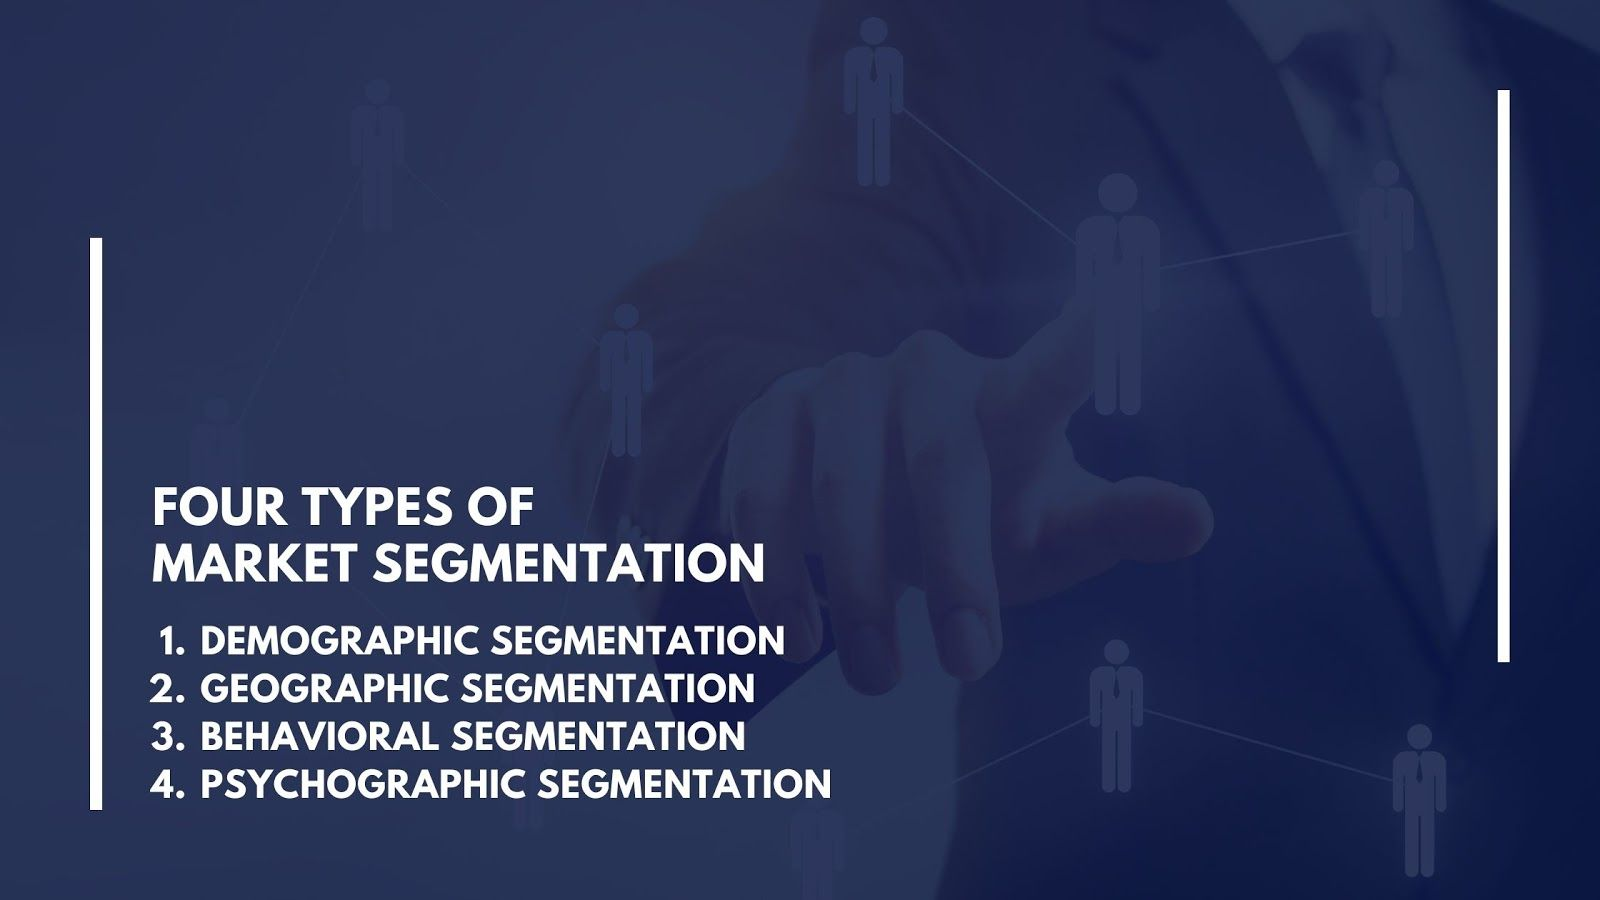 What are the 4 types of market segmentation?